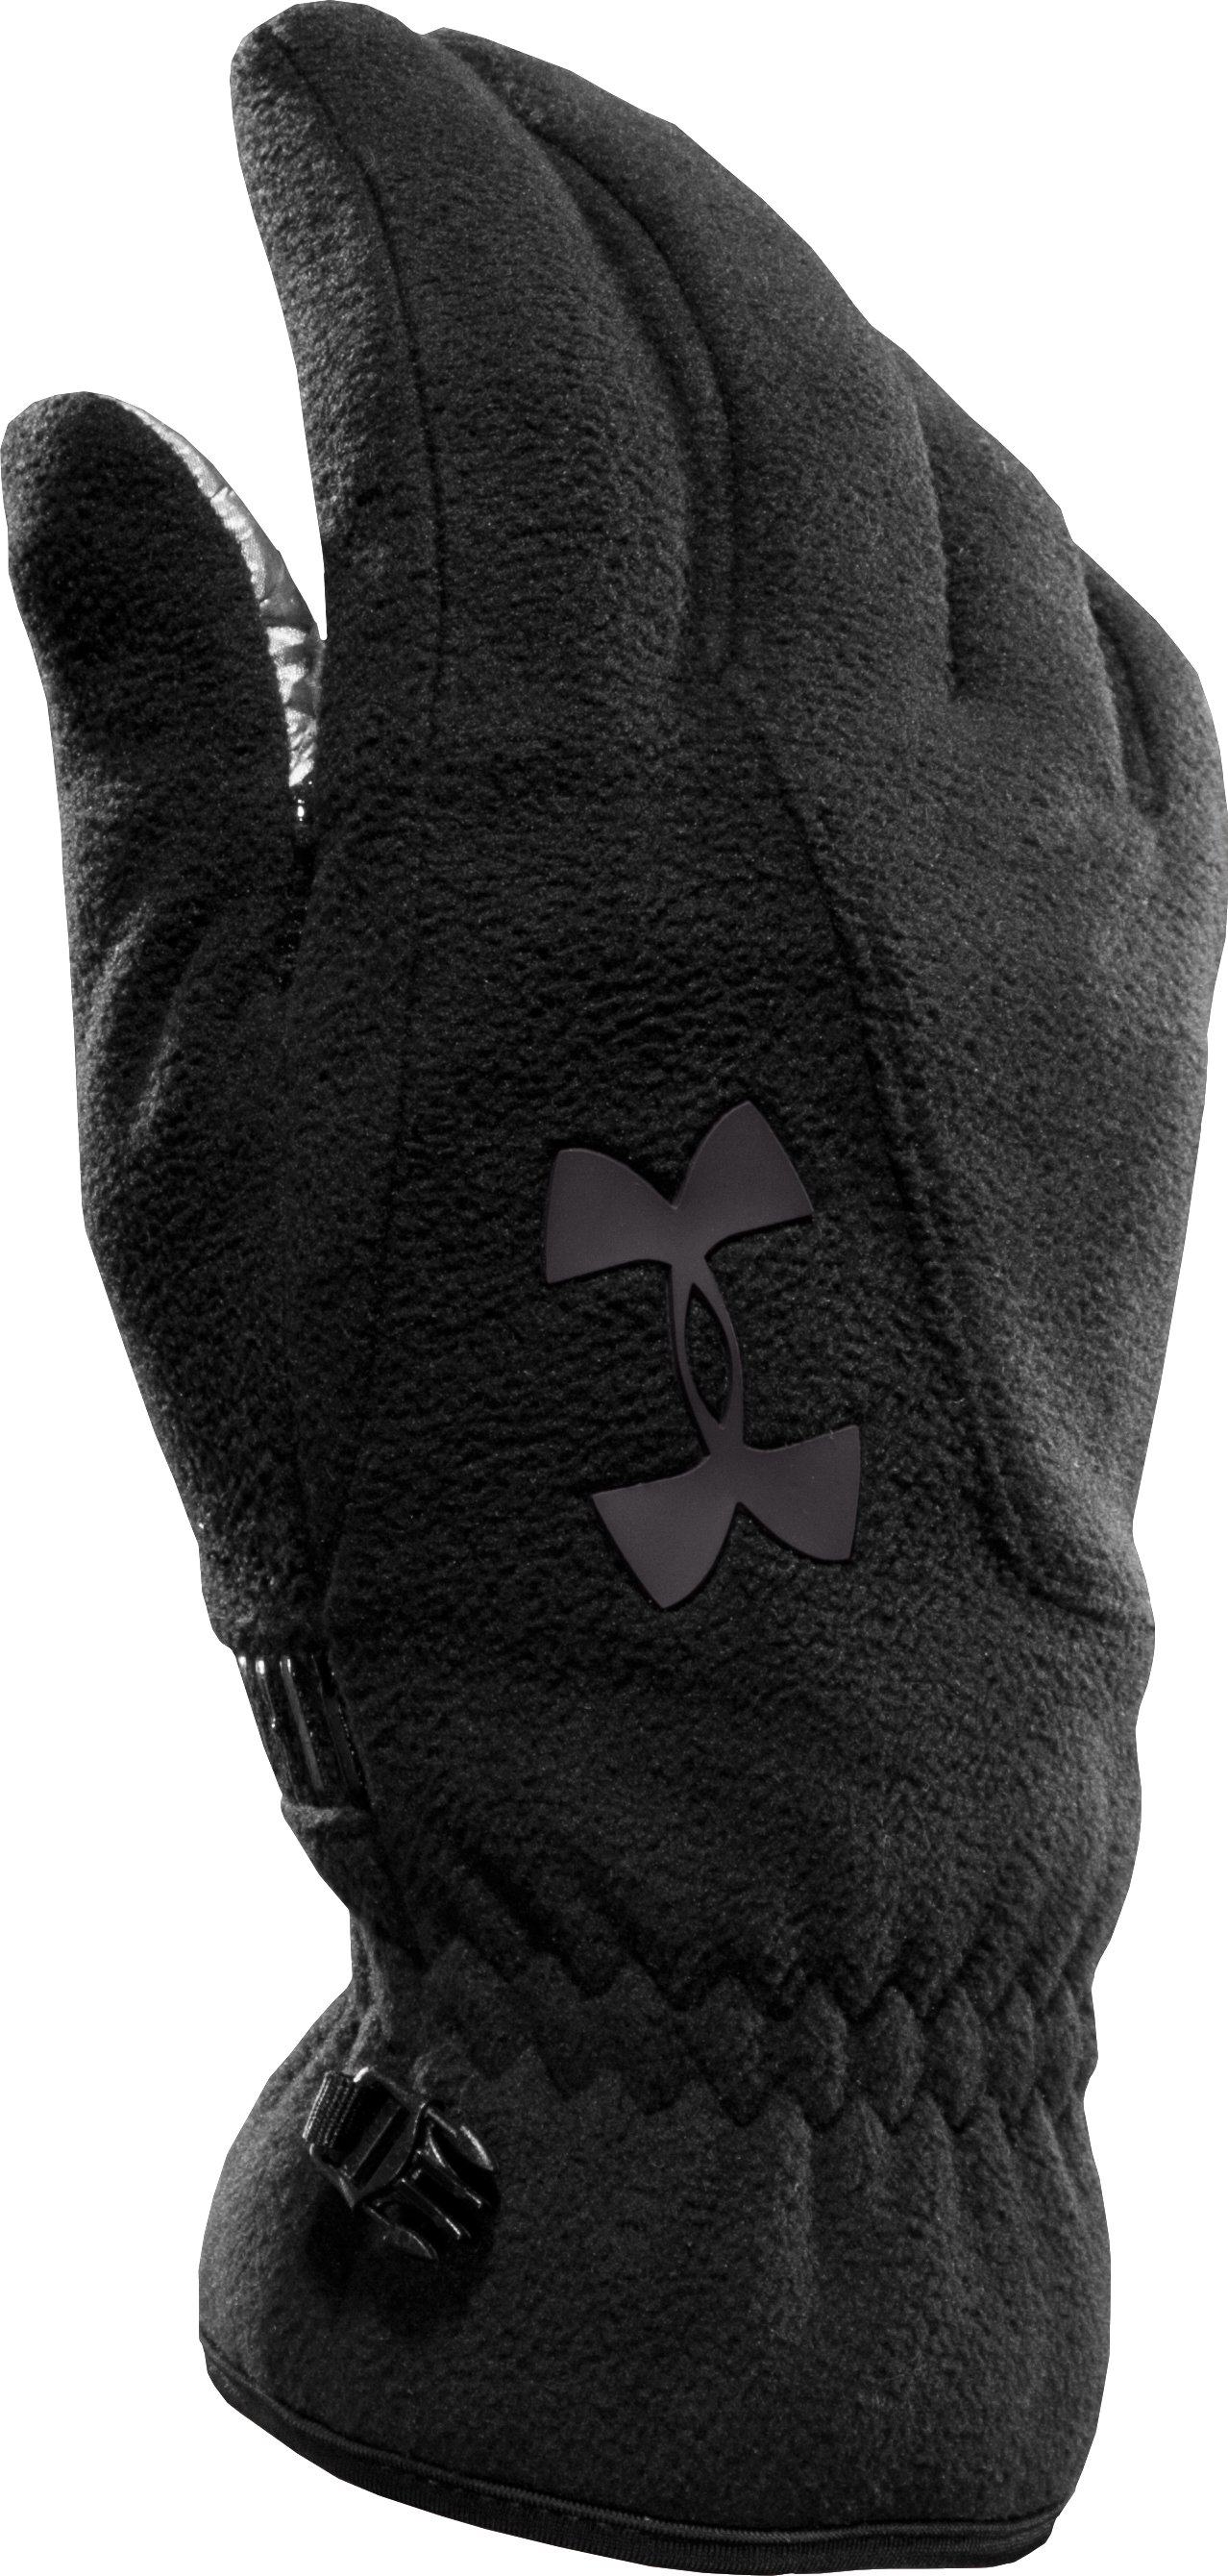 Men's ColdGear® Infrared Storm Convex Gloves, Black , zoomed image